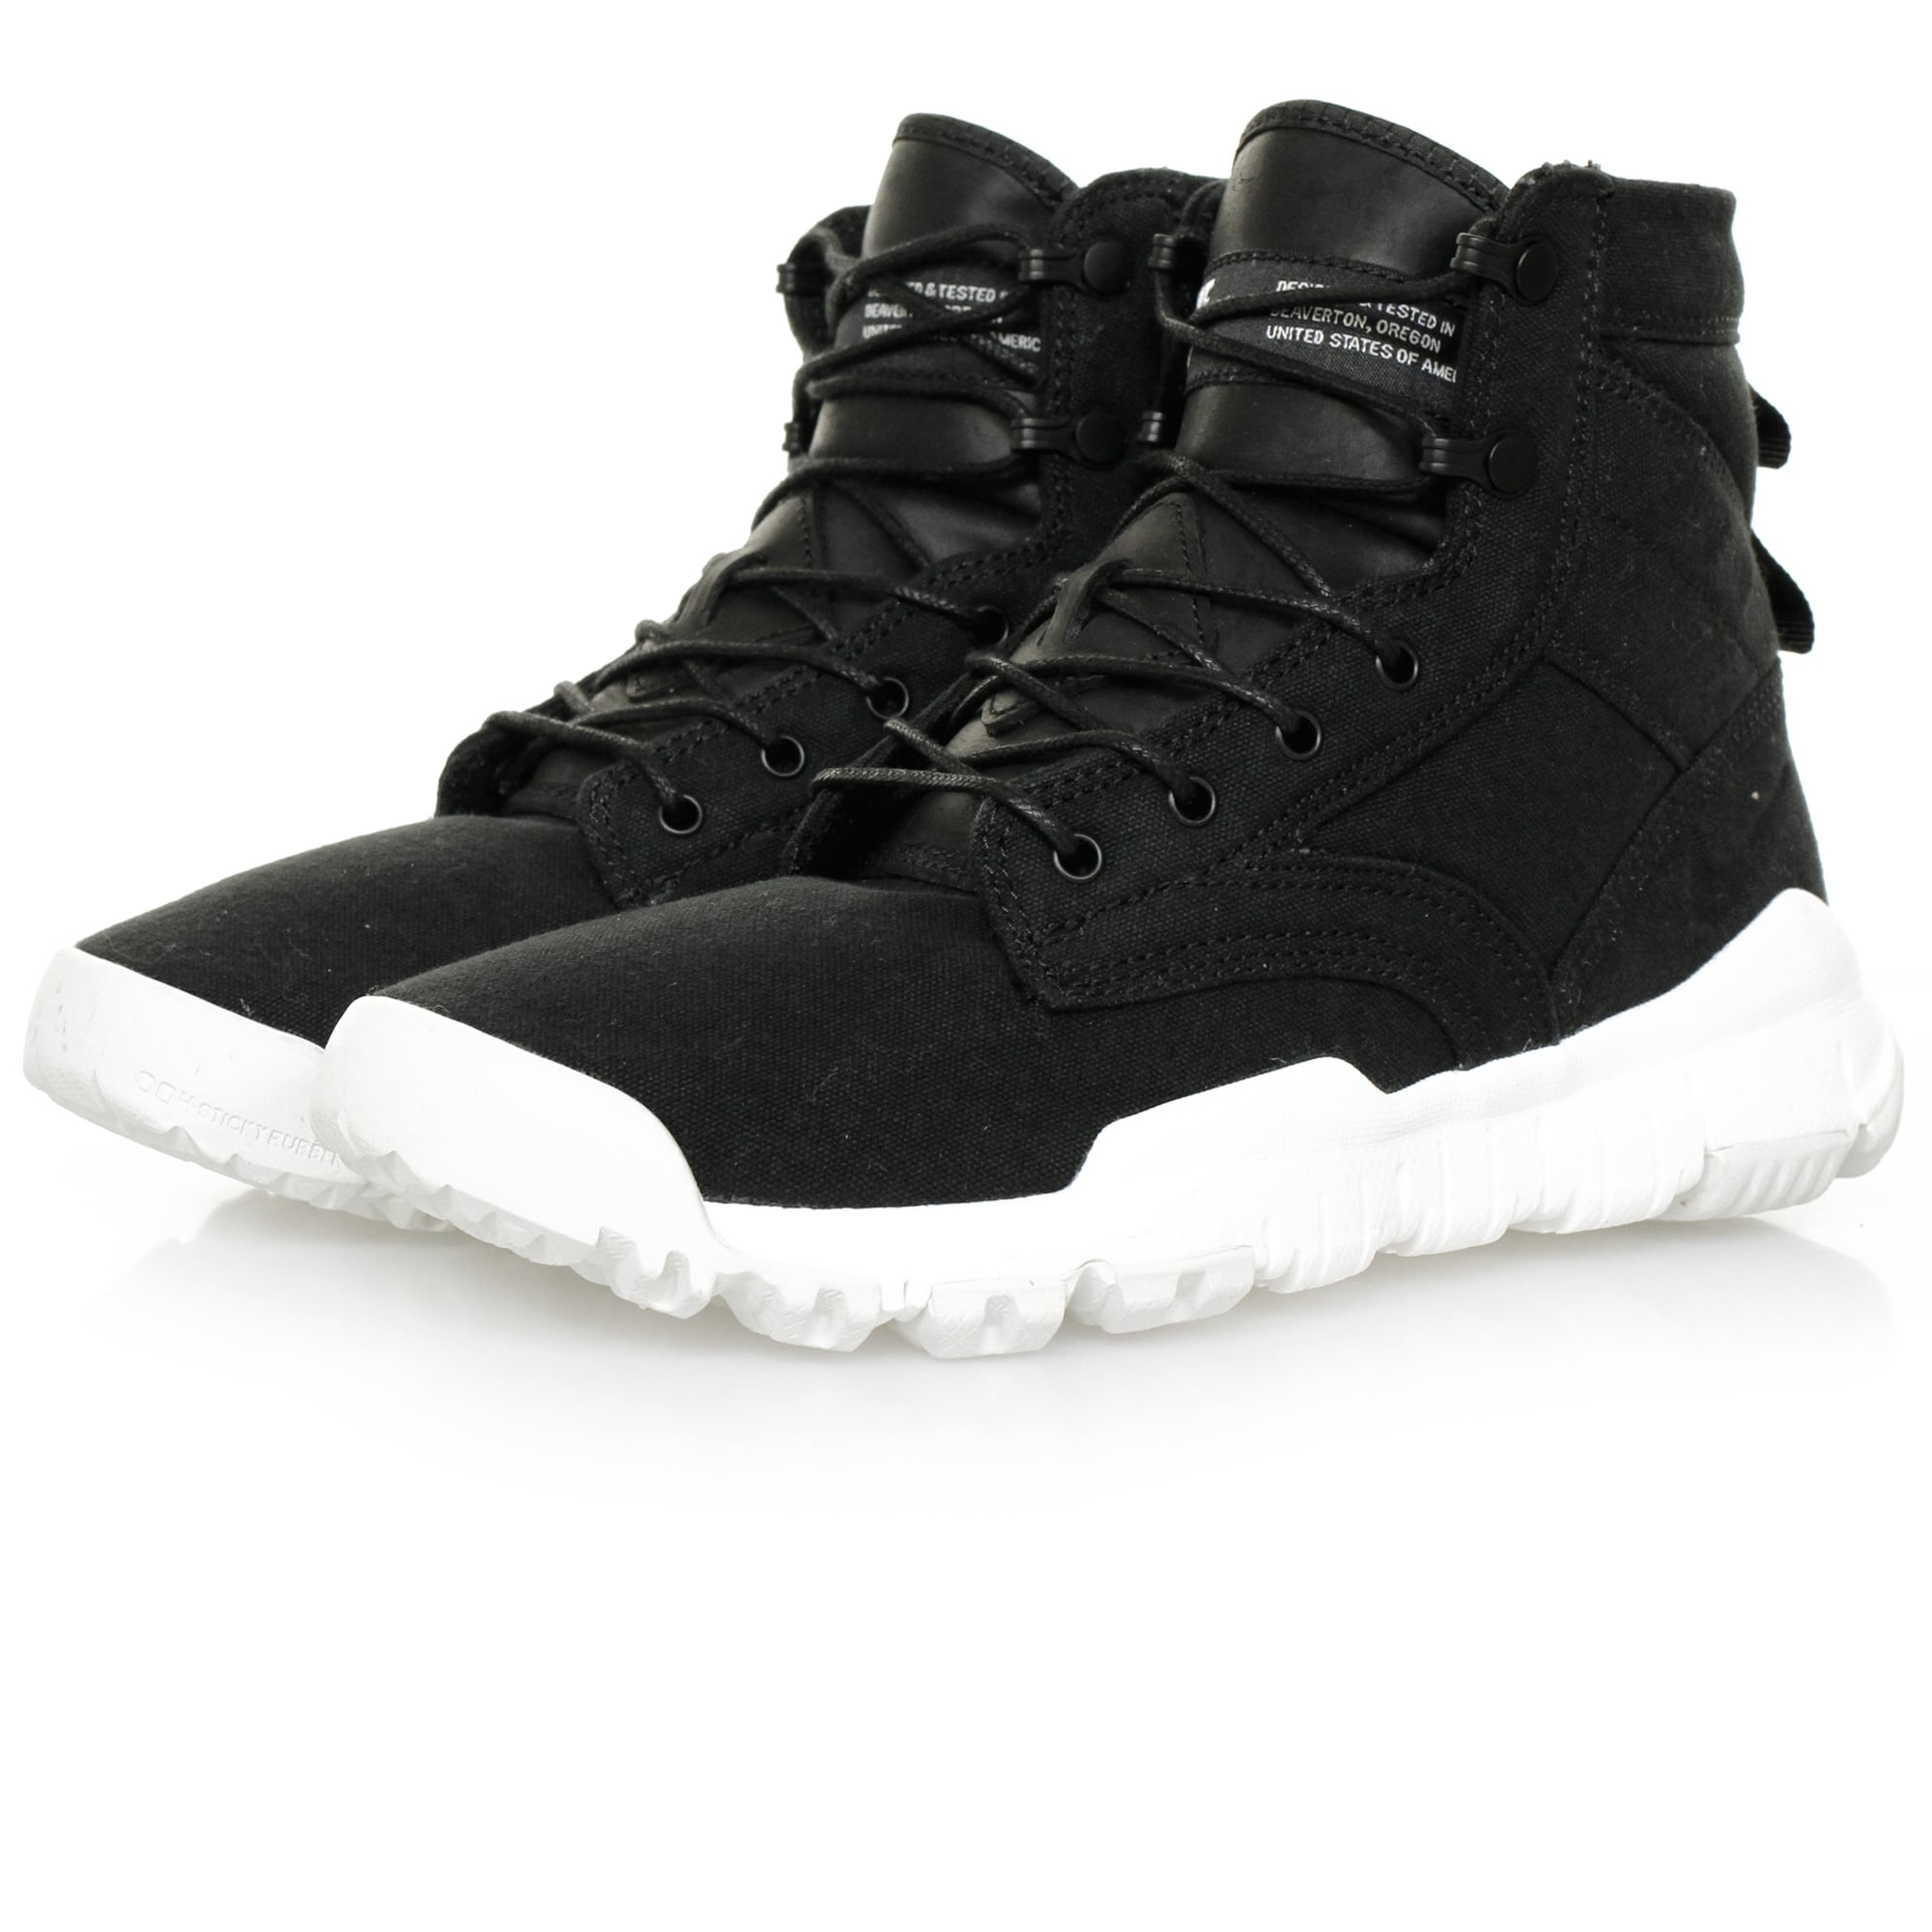 nike sfb field sneakers 6 quot cargo black boot